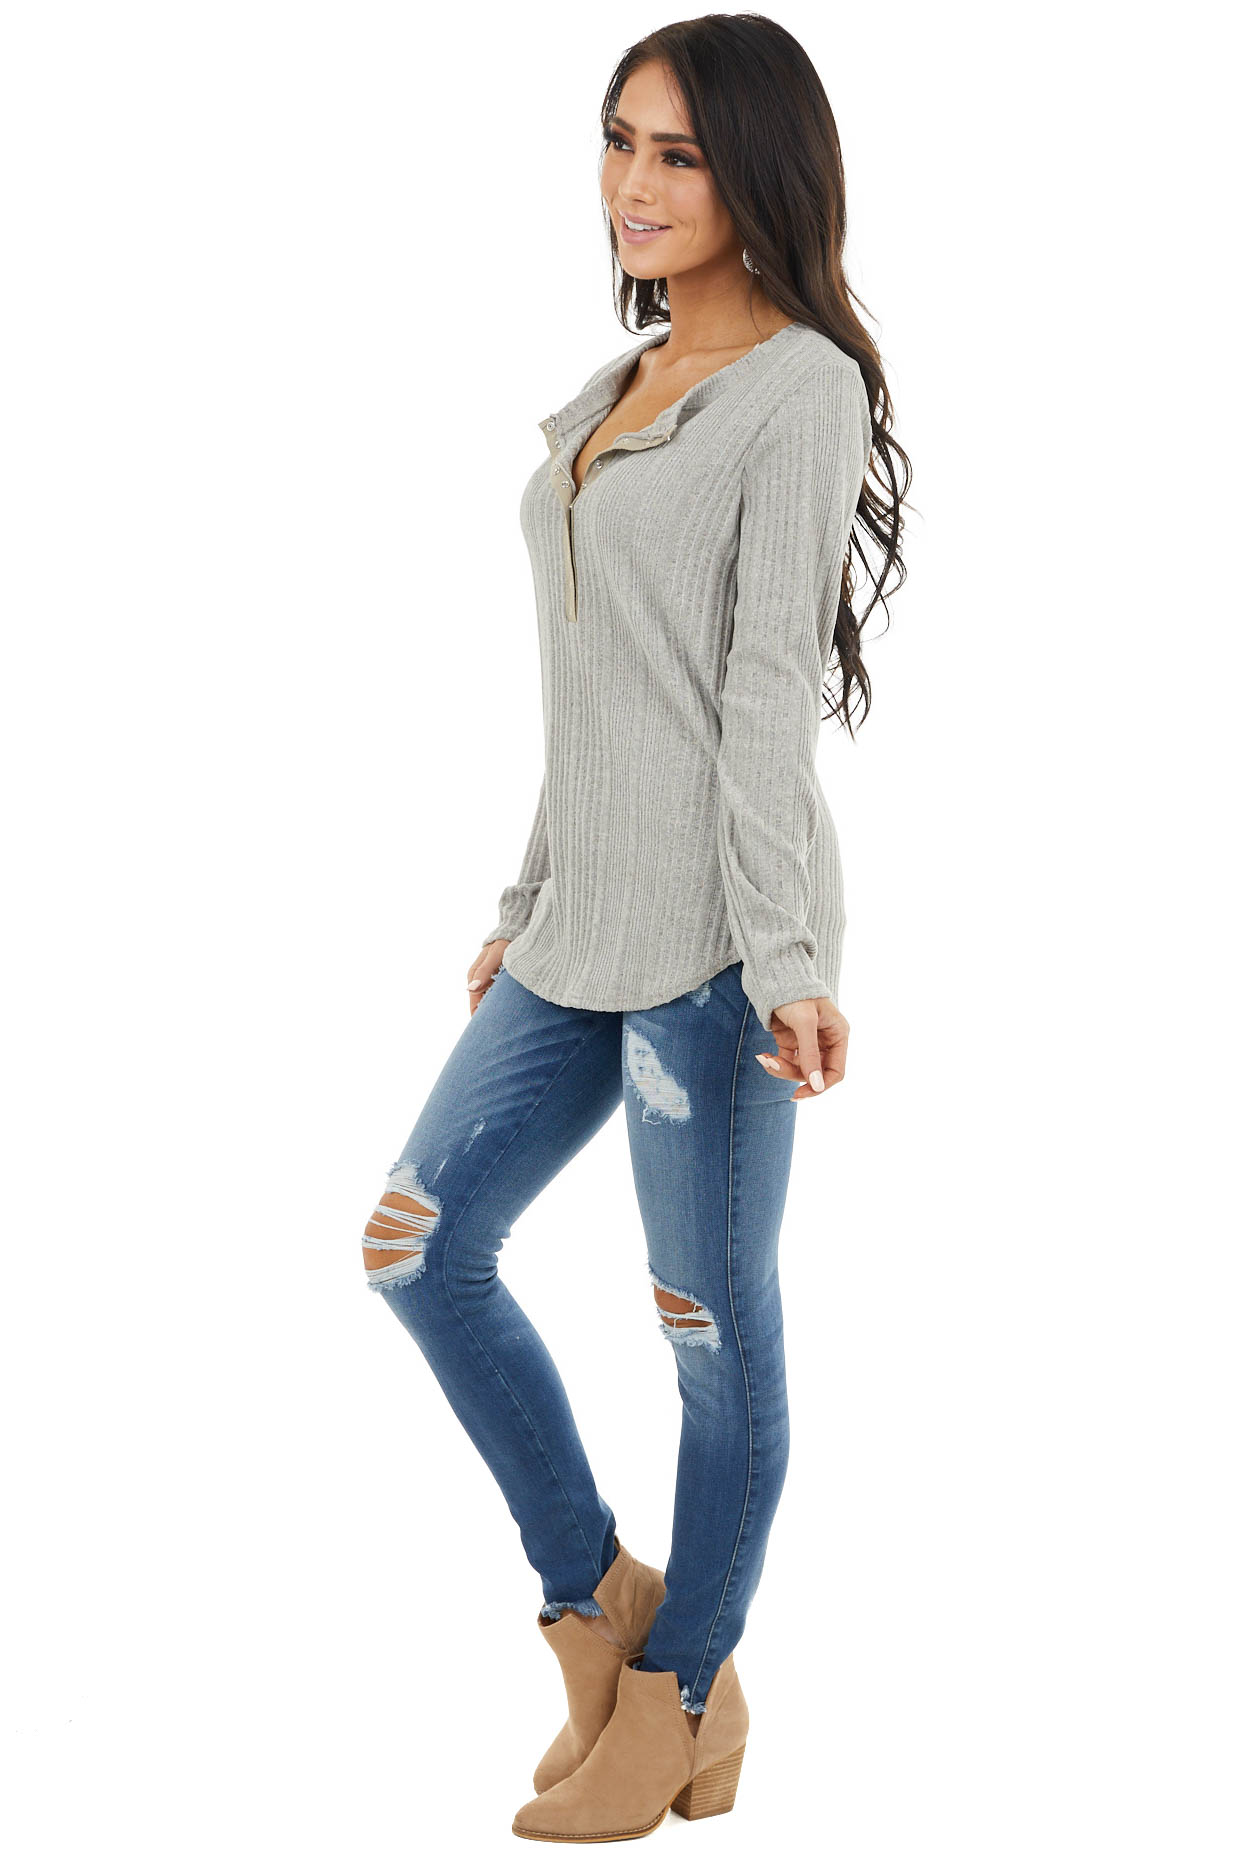 Heather Grey Ribbed Textured Top with Snap Closure Buttons